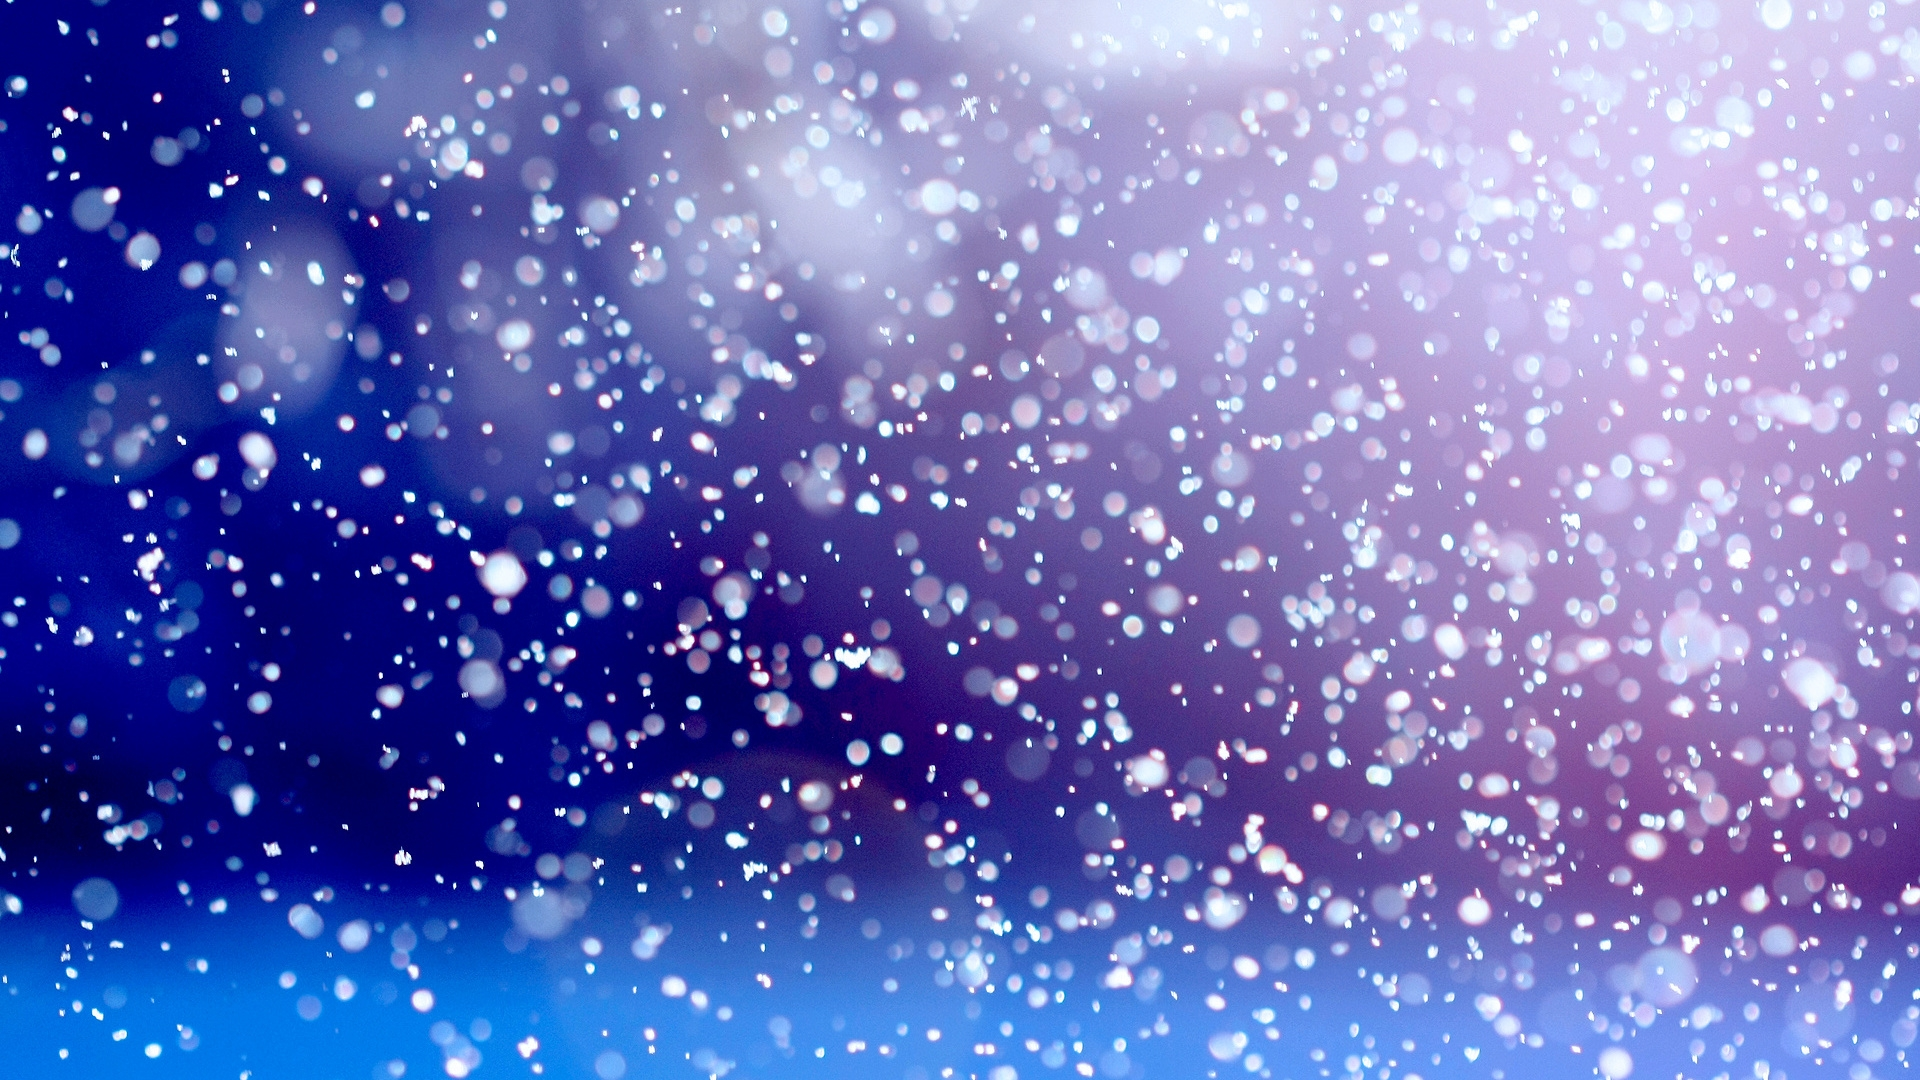 Download-1920x1080-Weather-June-Snow-Purple-Blue-wallpaper-wpc9004470